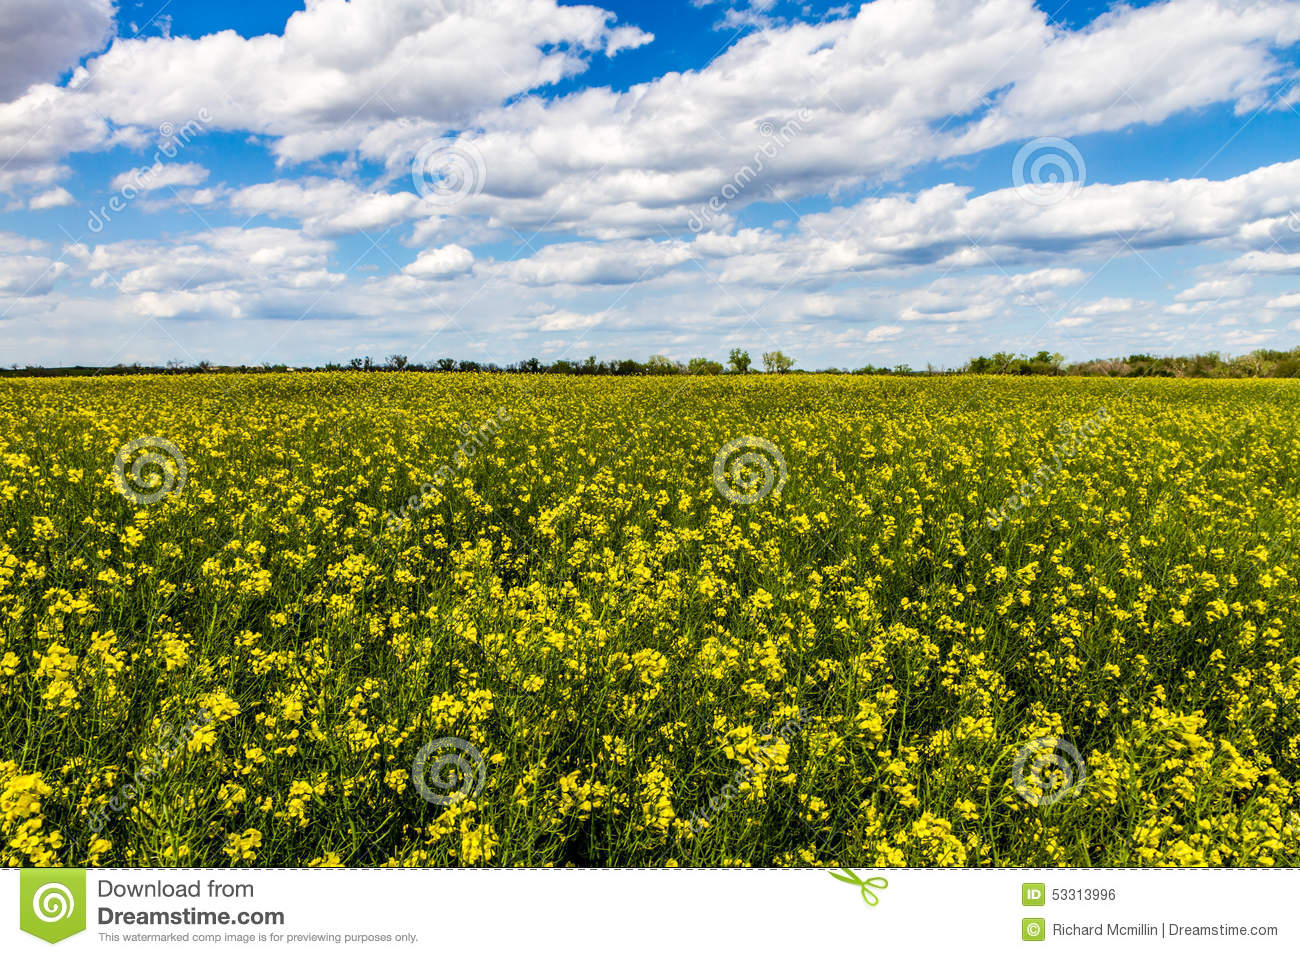 Wide angle shot of a field of bright yellow flowering canola download wide angle shot of a field of bright yellow flowering canola rapeseed plants mightylinksfo